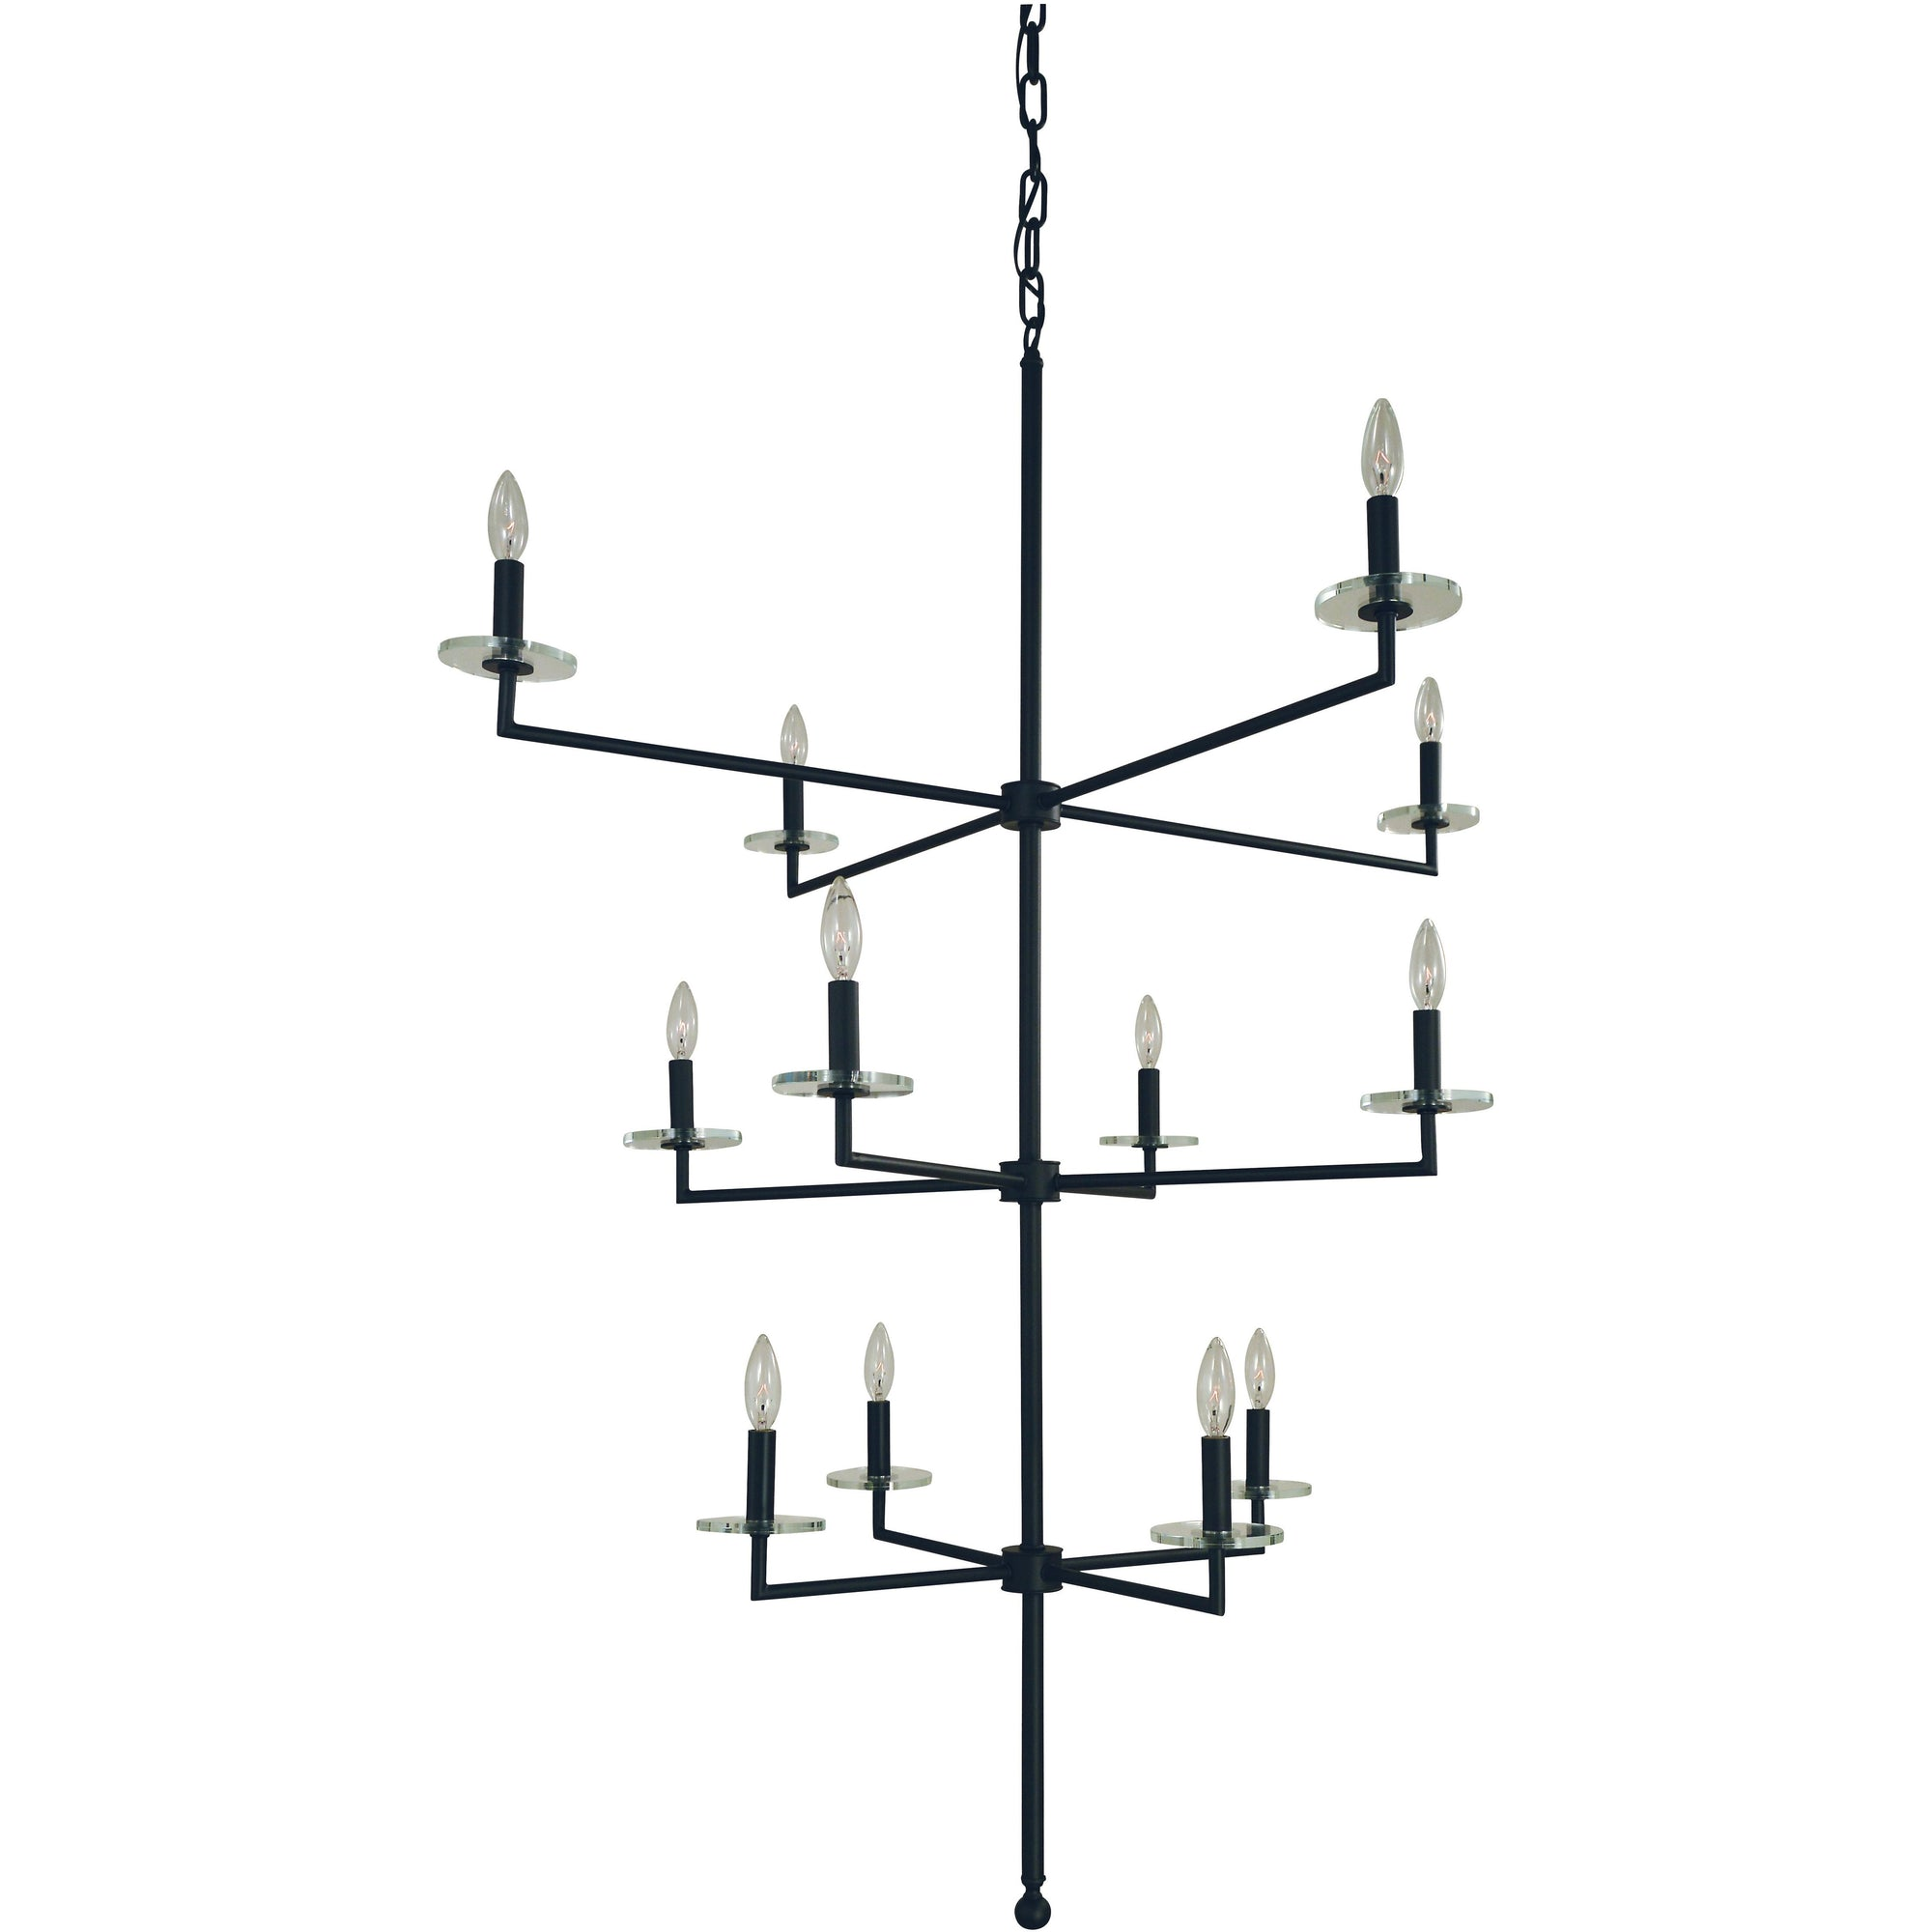 Framburg Chandeliers Matte Black 12-Light Matte Black Muse Foyer Chandelier by Framburg 5452